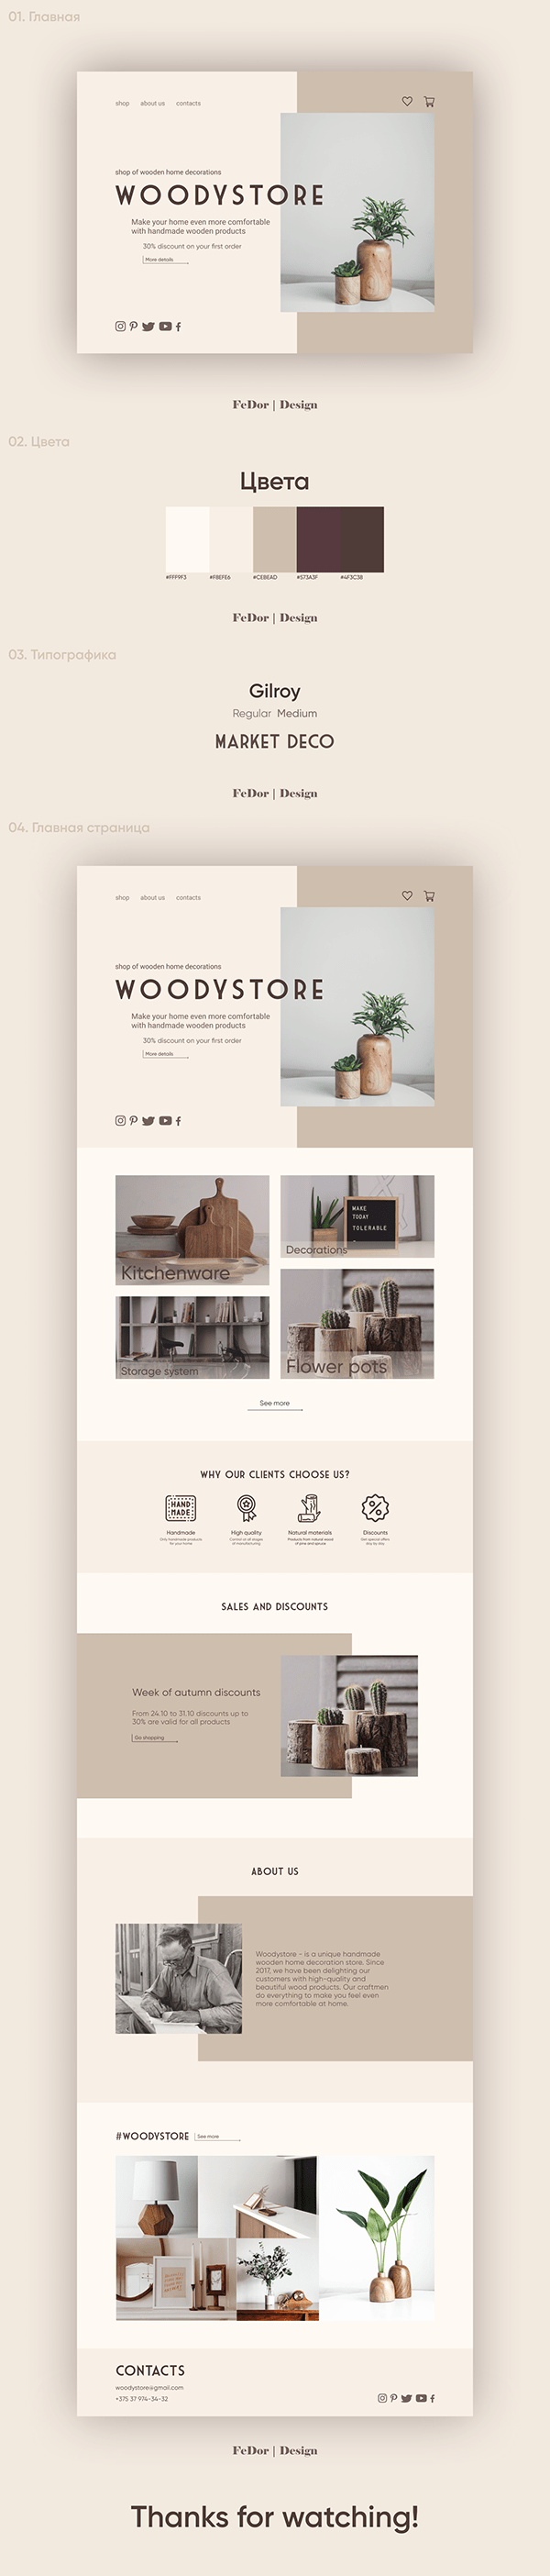 WoodyStore | Landing page